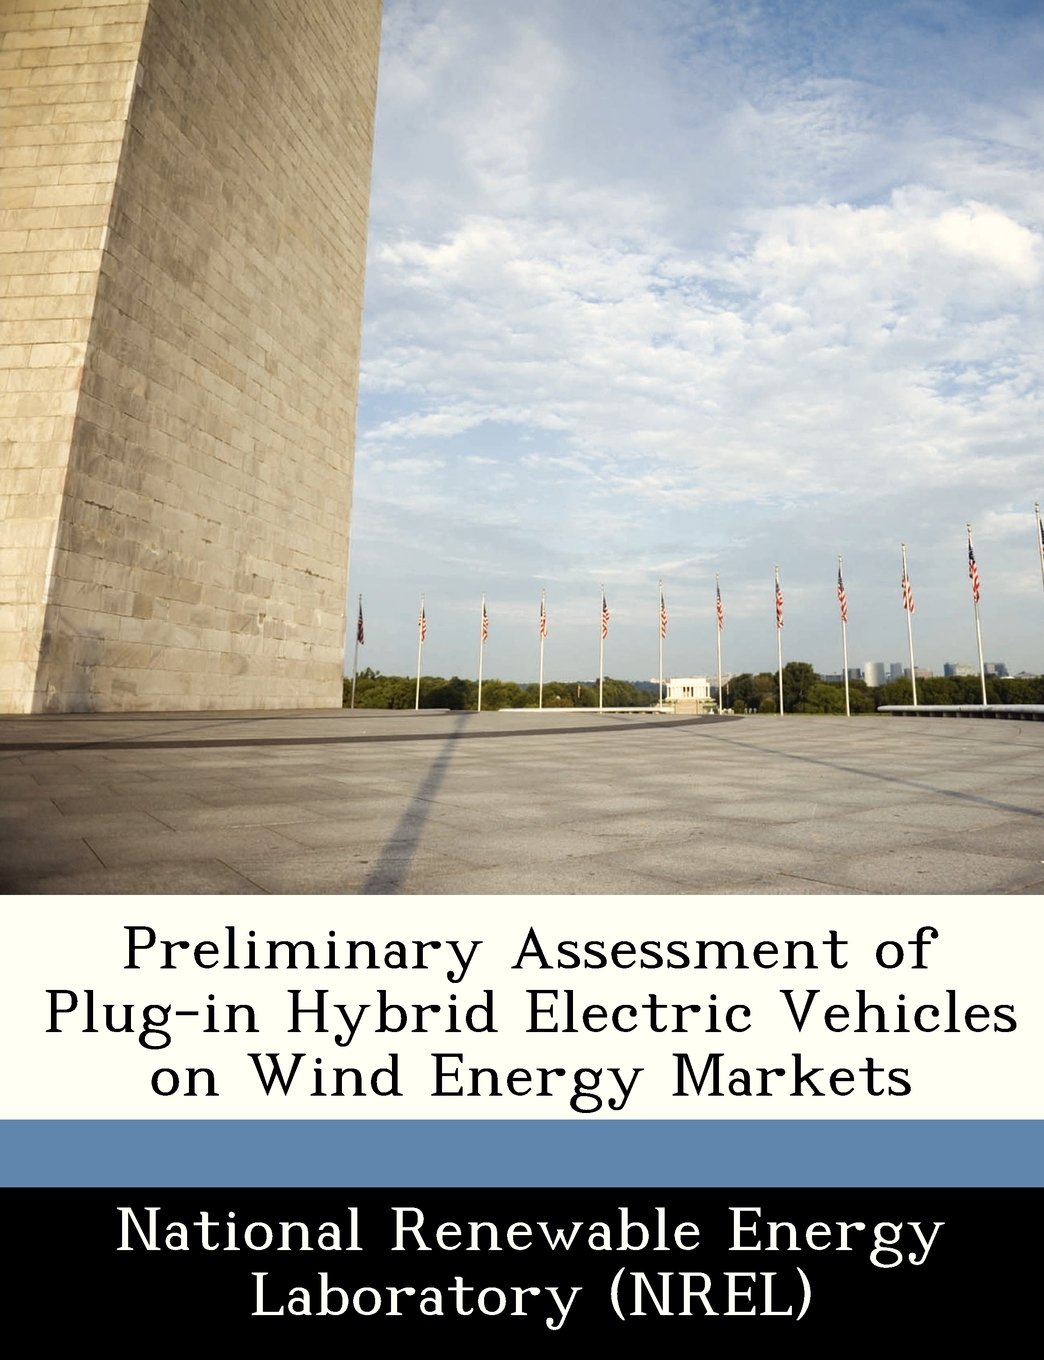 Preliminary Assessment of Plug-in Hybrid Electric Vehicles on Wind Energy Markets